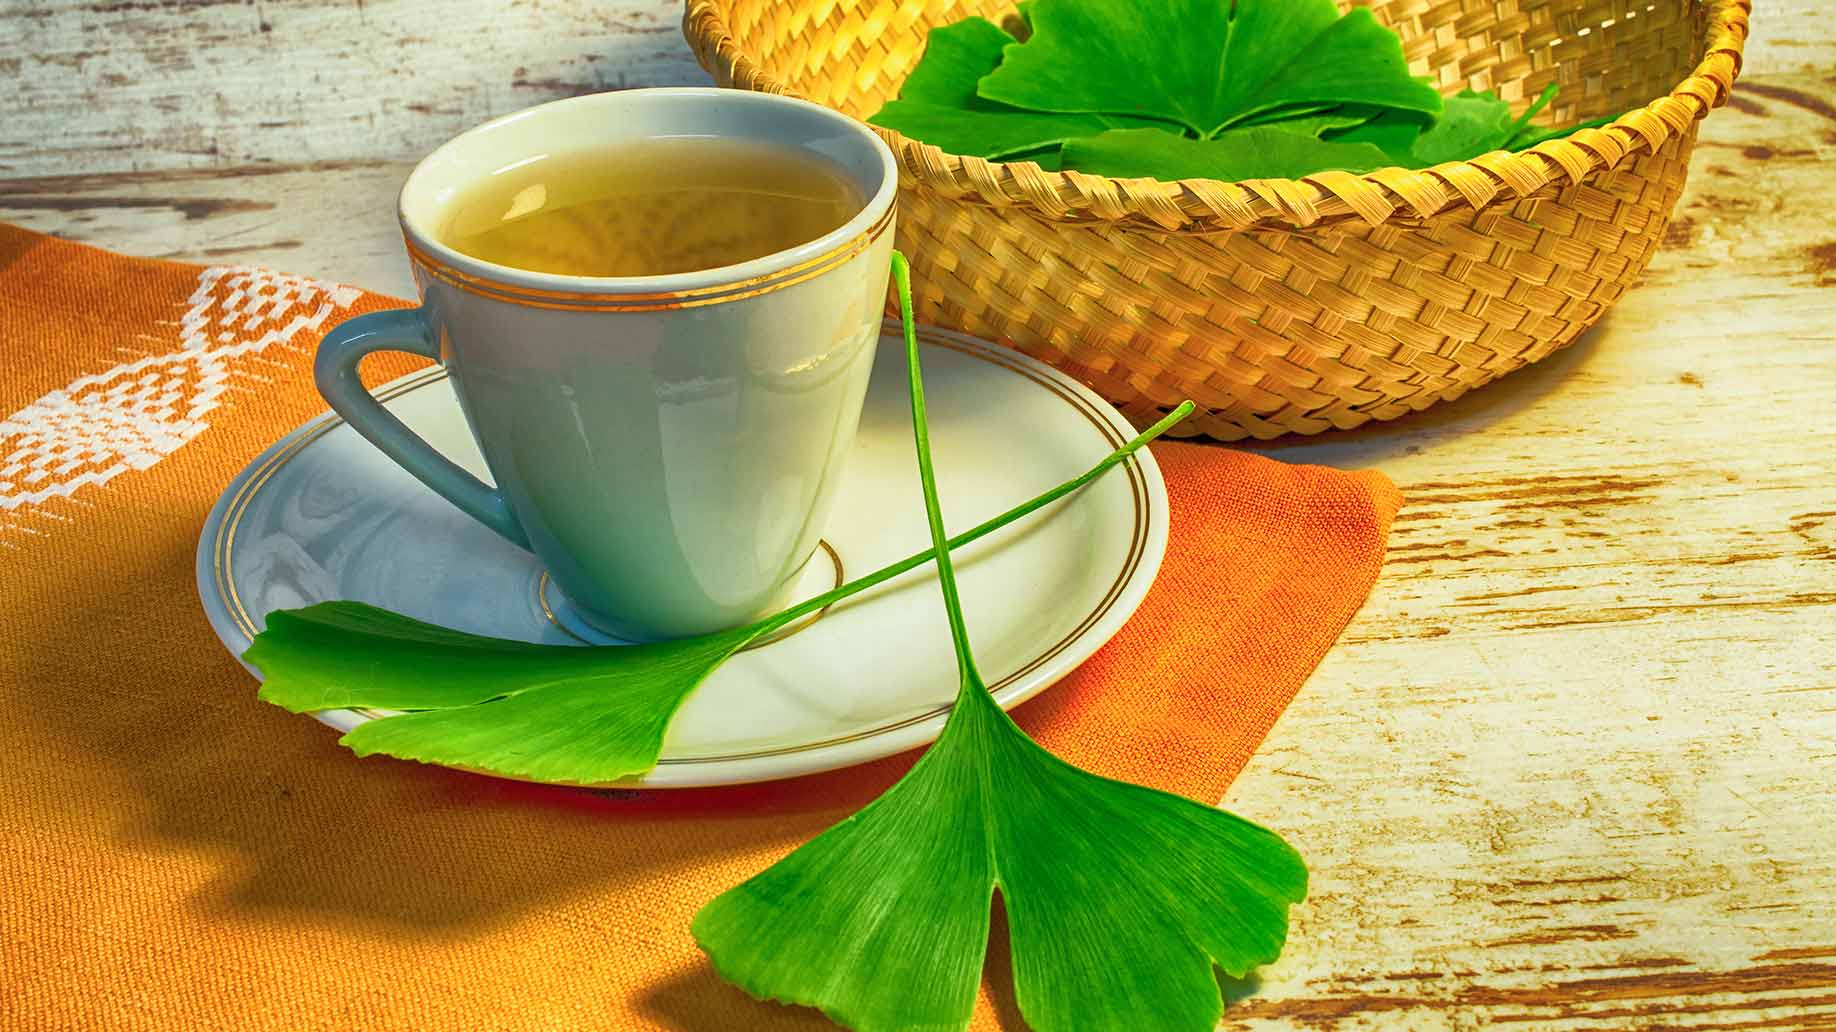 Leaky gut ginkgo biloba green leaves tea natural remedies